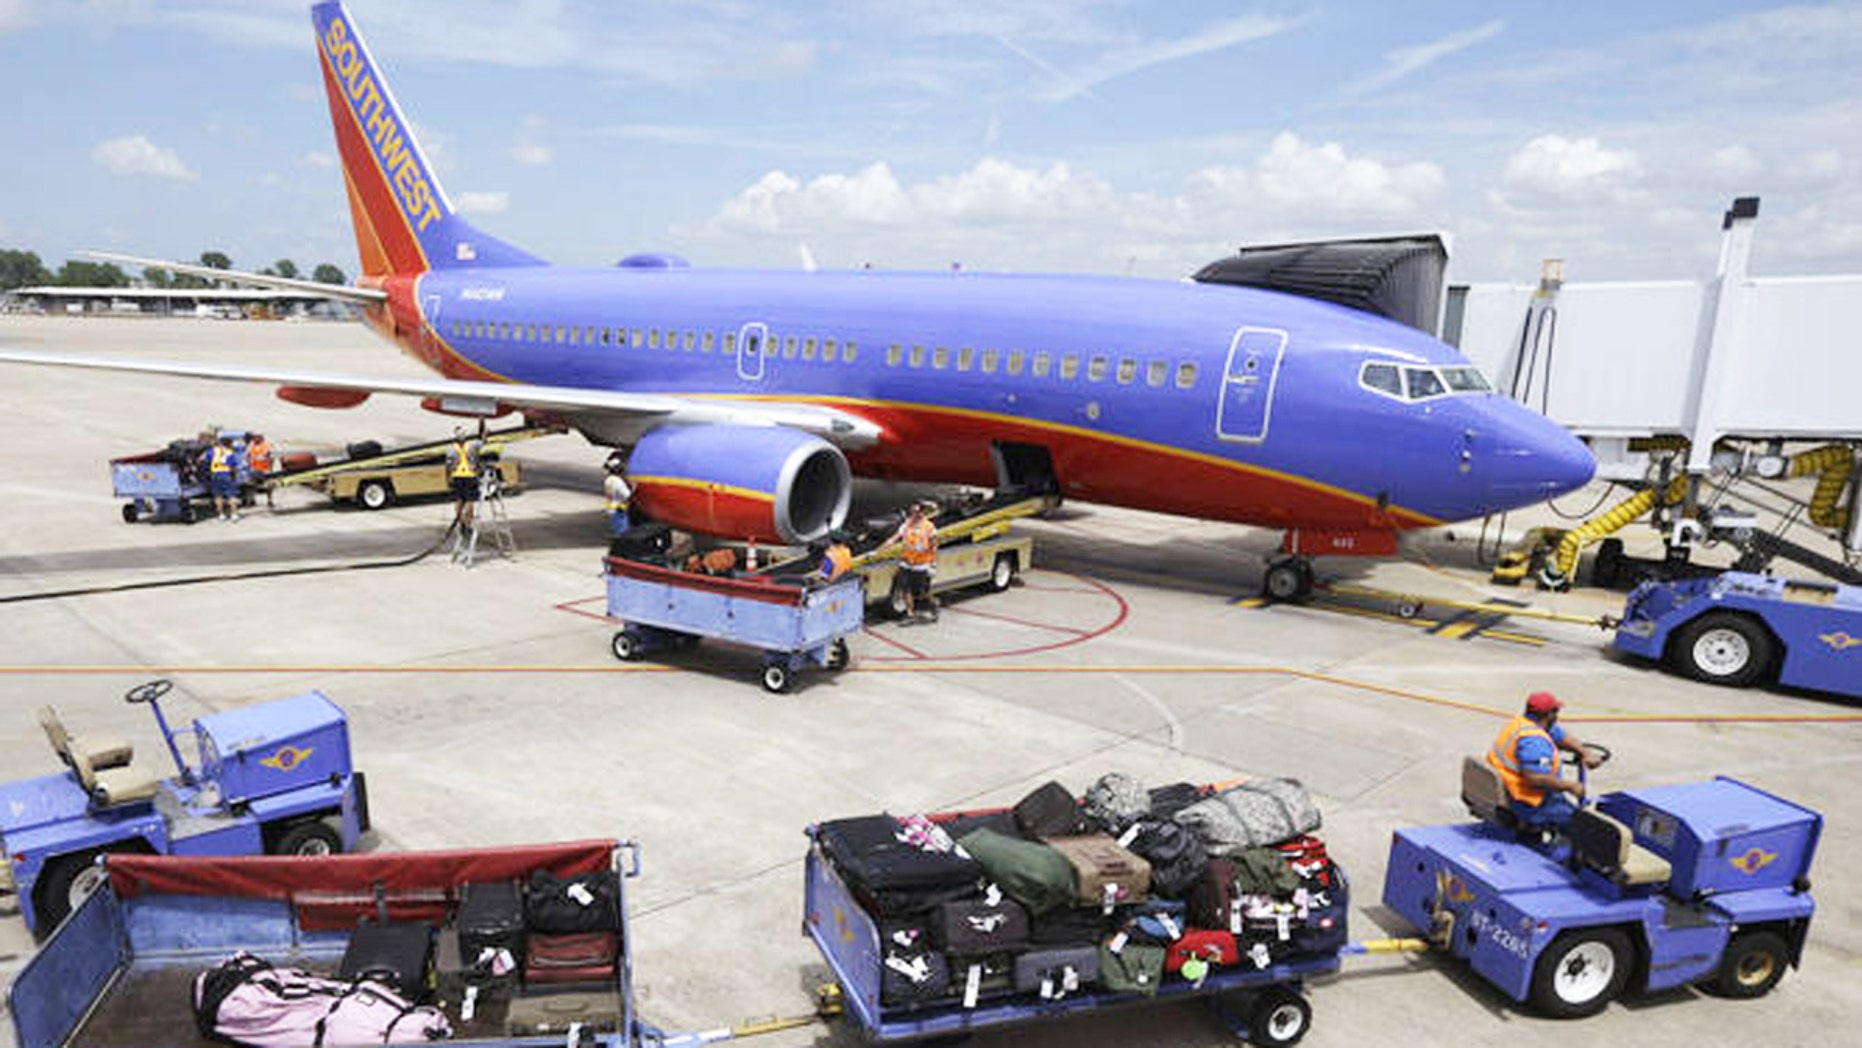 Not all airlines are created equal. But some may be better depending on where you want to fly.